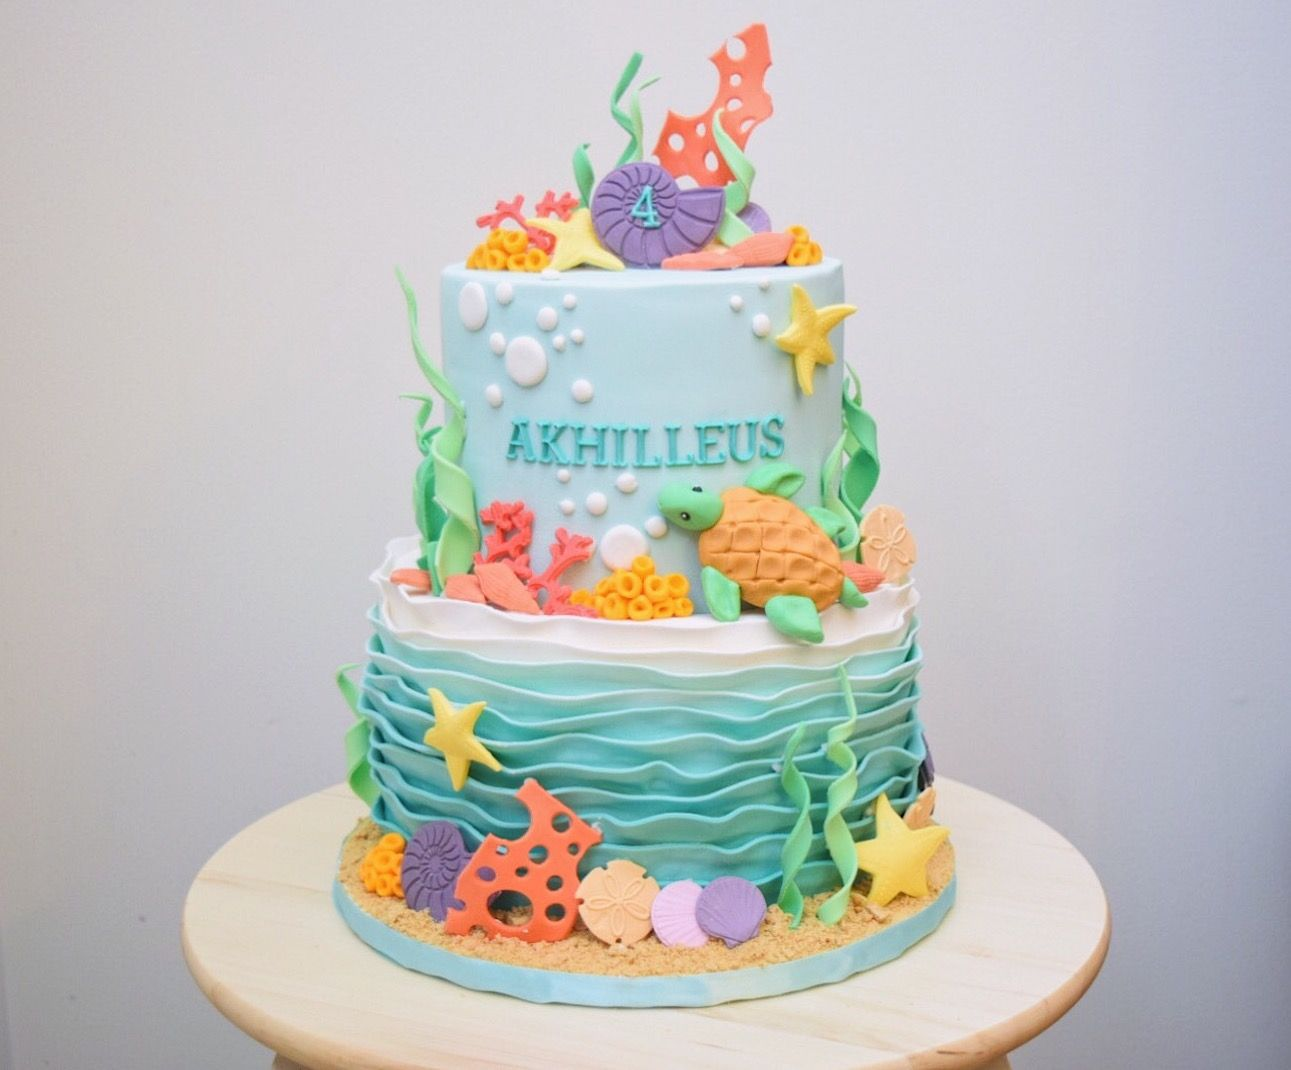 My Take On An Under The Sea Themed Cake With Images Ocean Birthday Cakes Ocean Cakes Cake